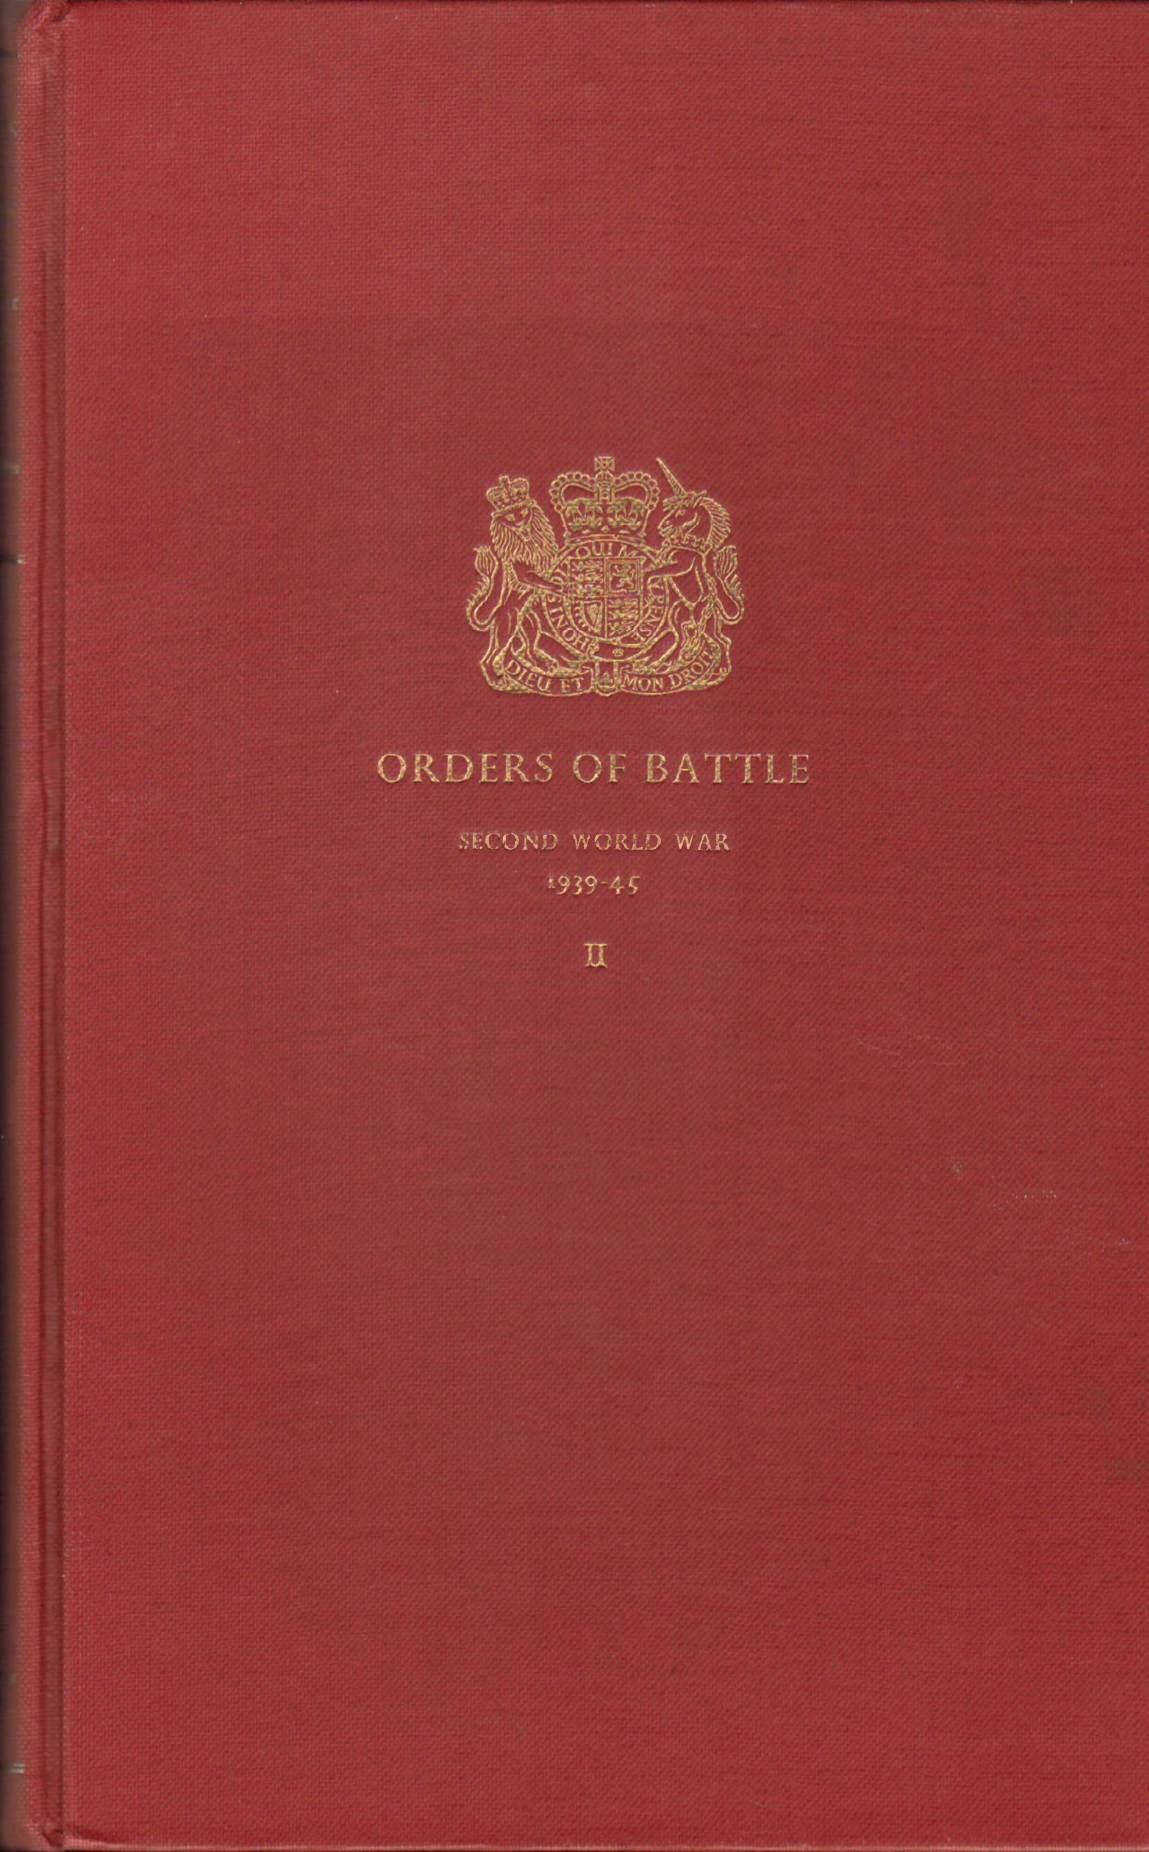 View individual pages of 'Orders of Battle, Second World War, 1939-45, Vol. II'